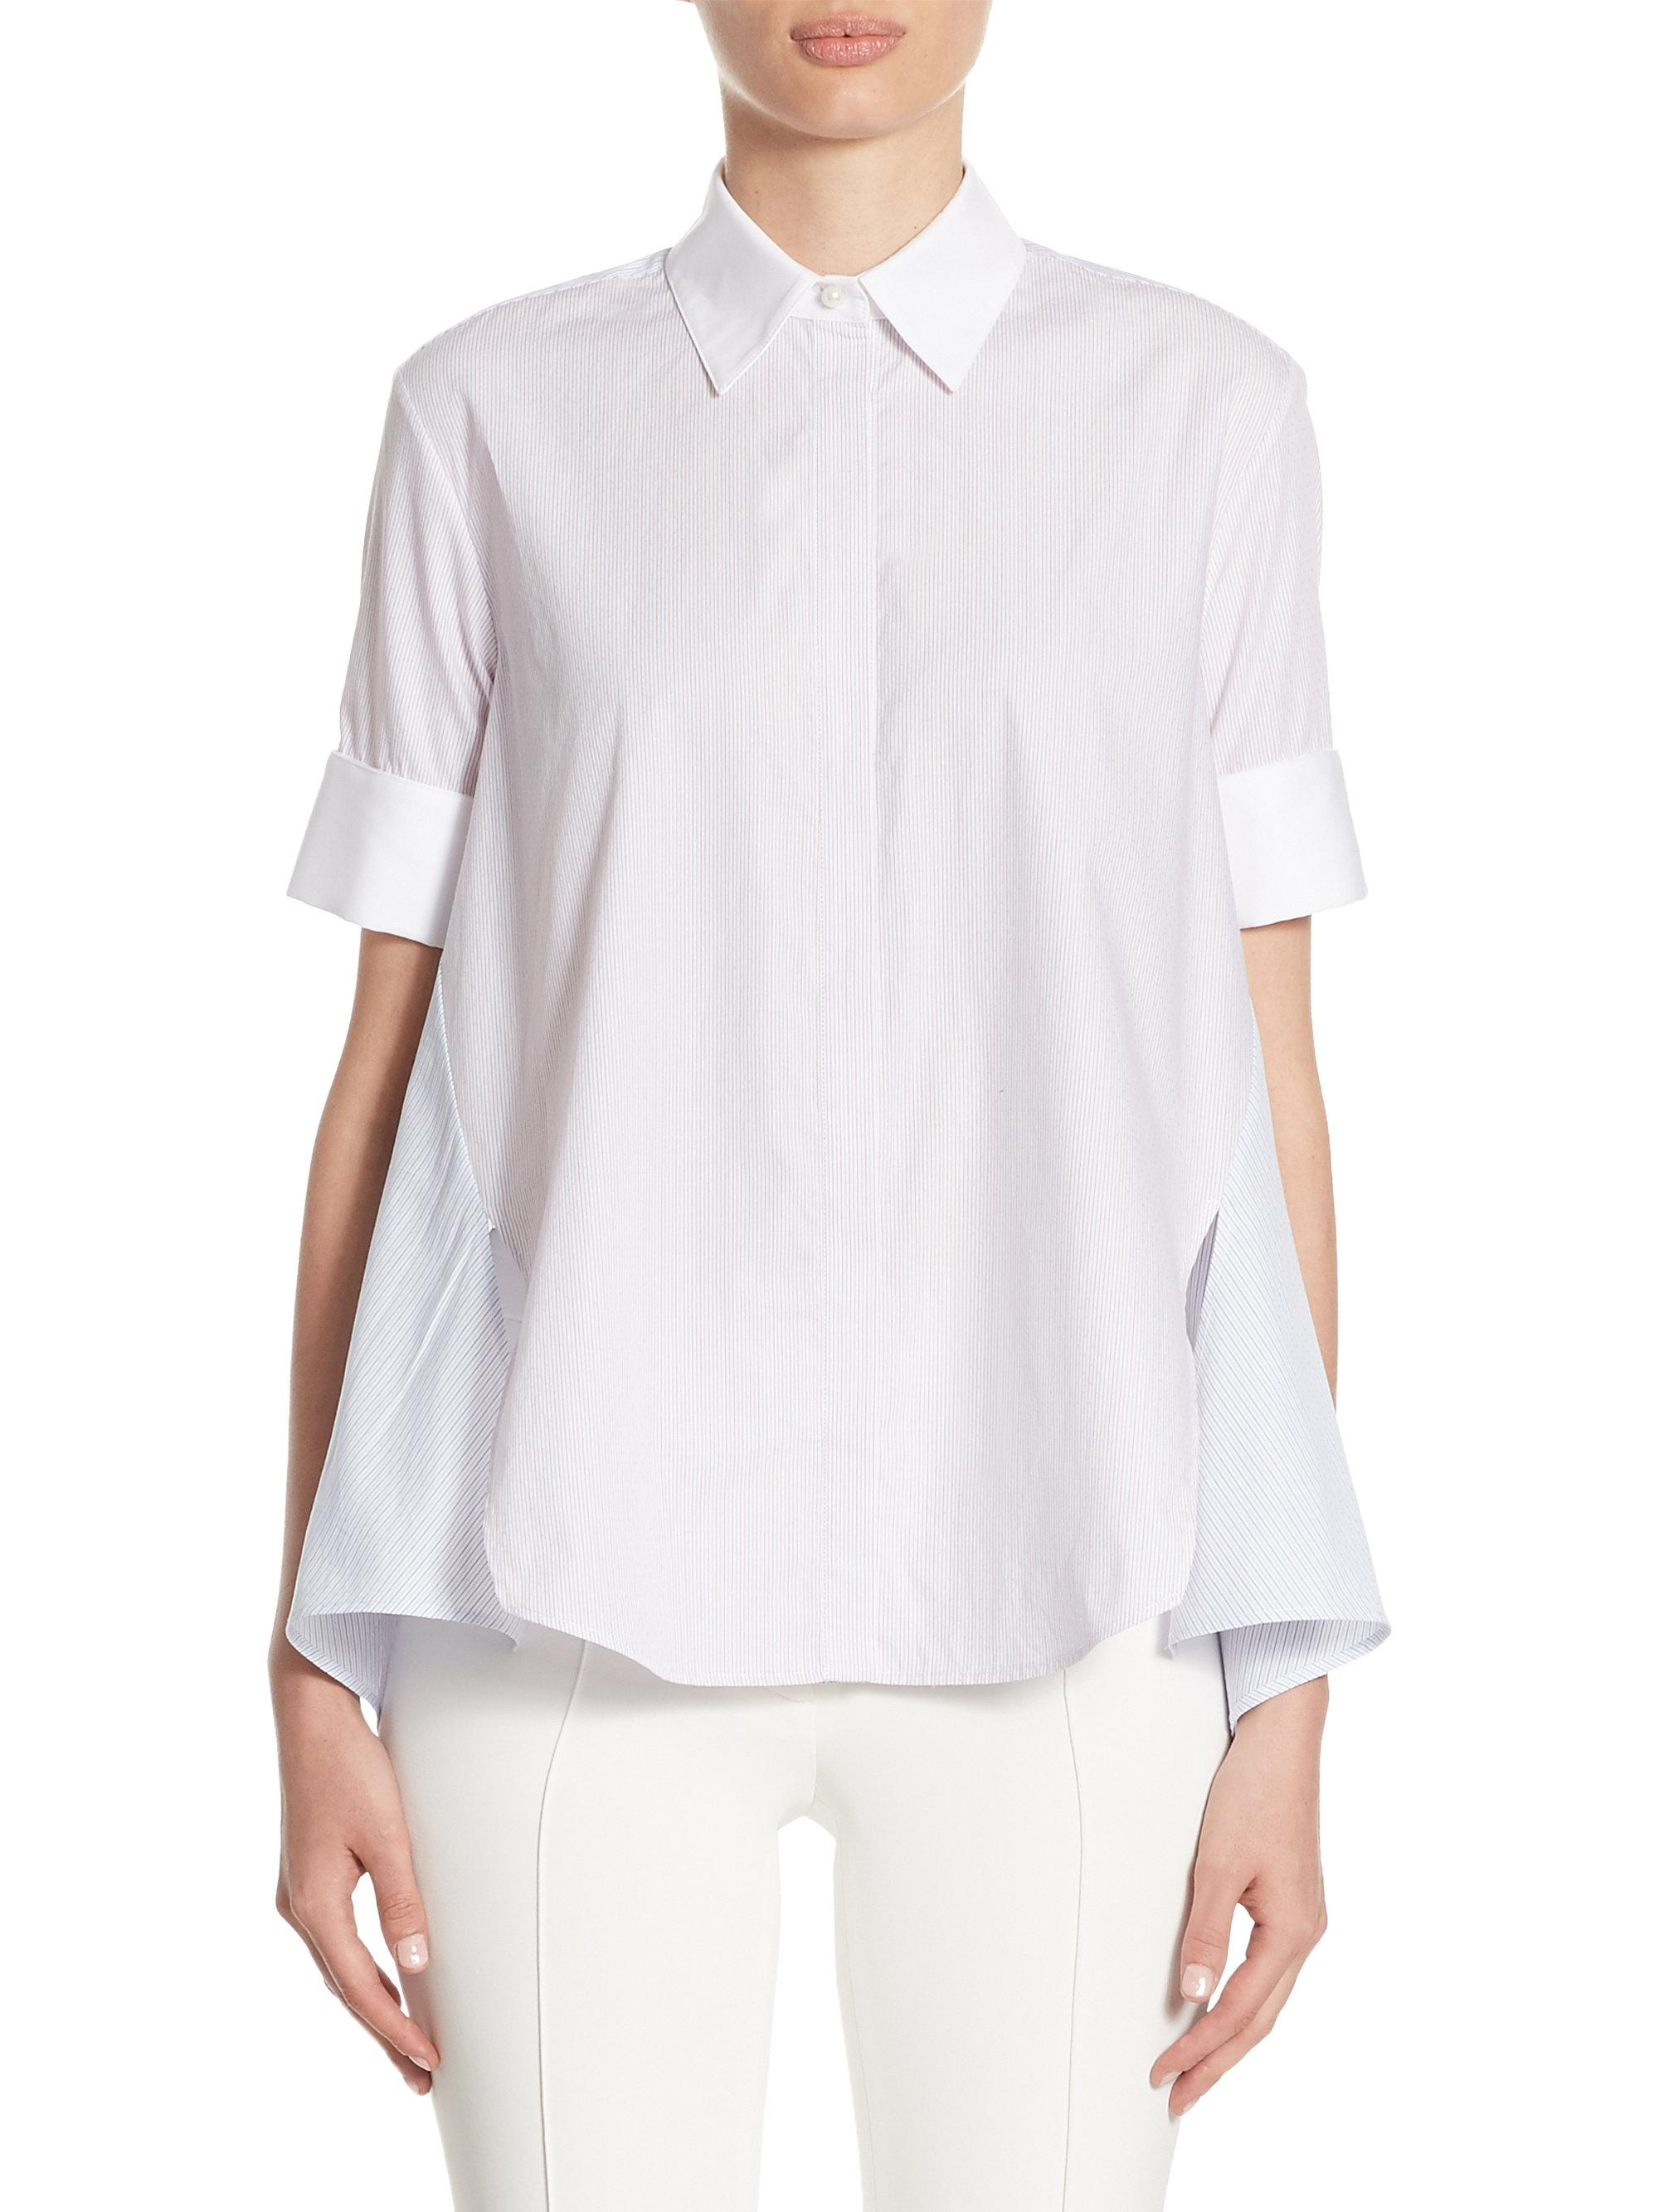 Adam lippes striped cotton trapeze shirt in white lyst for Adam lippes t shirt